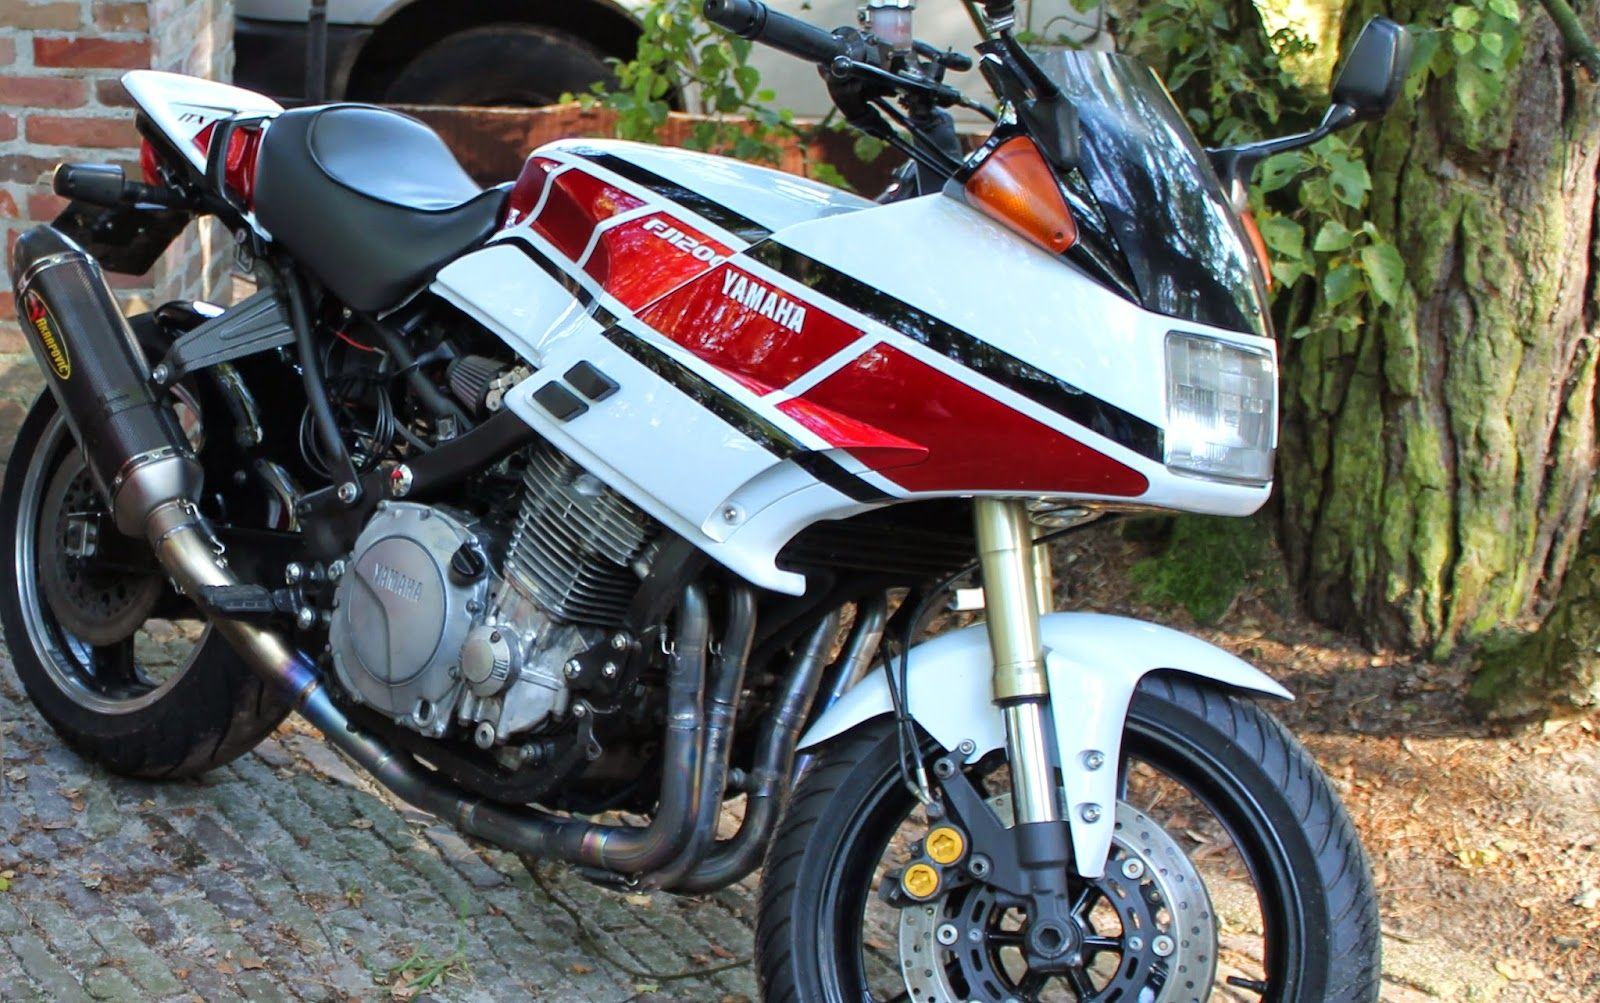 Cafe Racer Engines Fuel Passions Yamaha Cafe Racer Cafe Racer Street Fighter Motorcycle